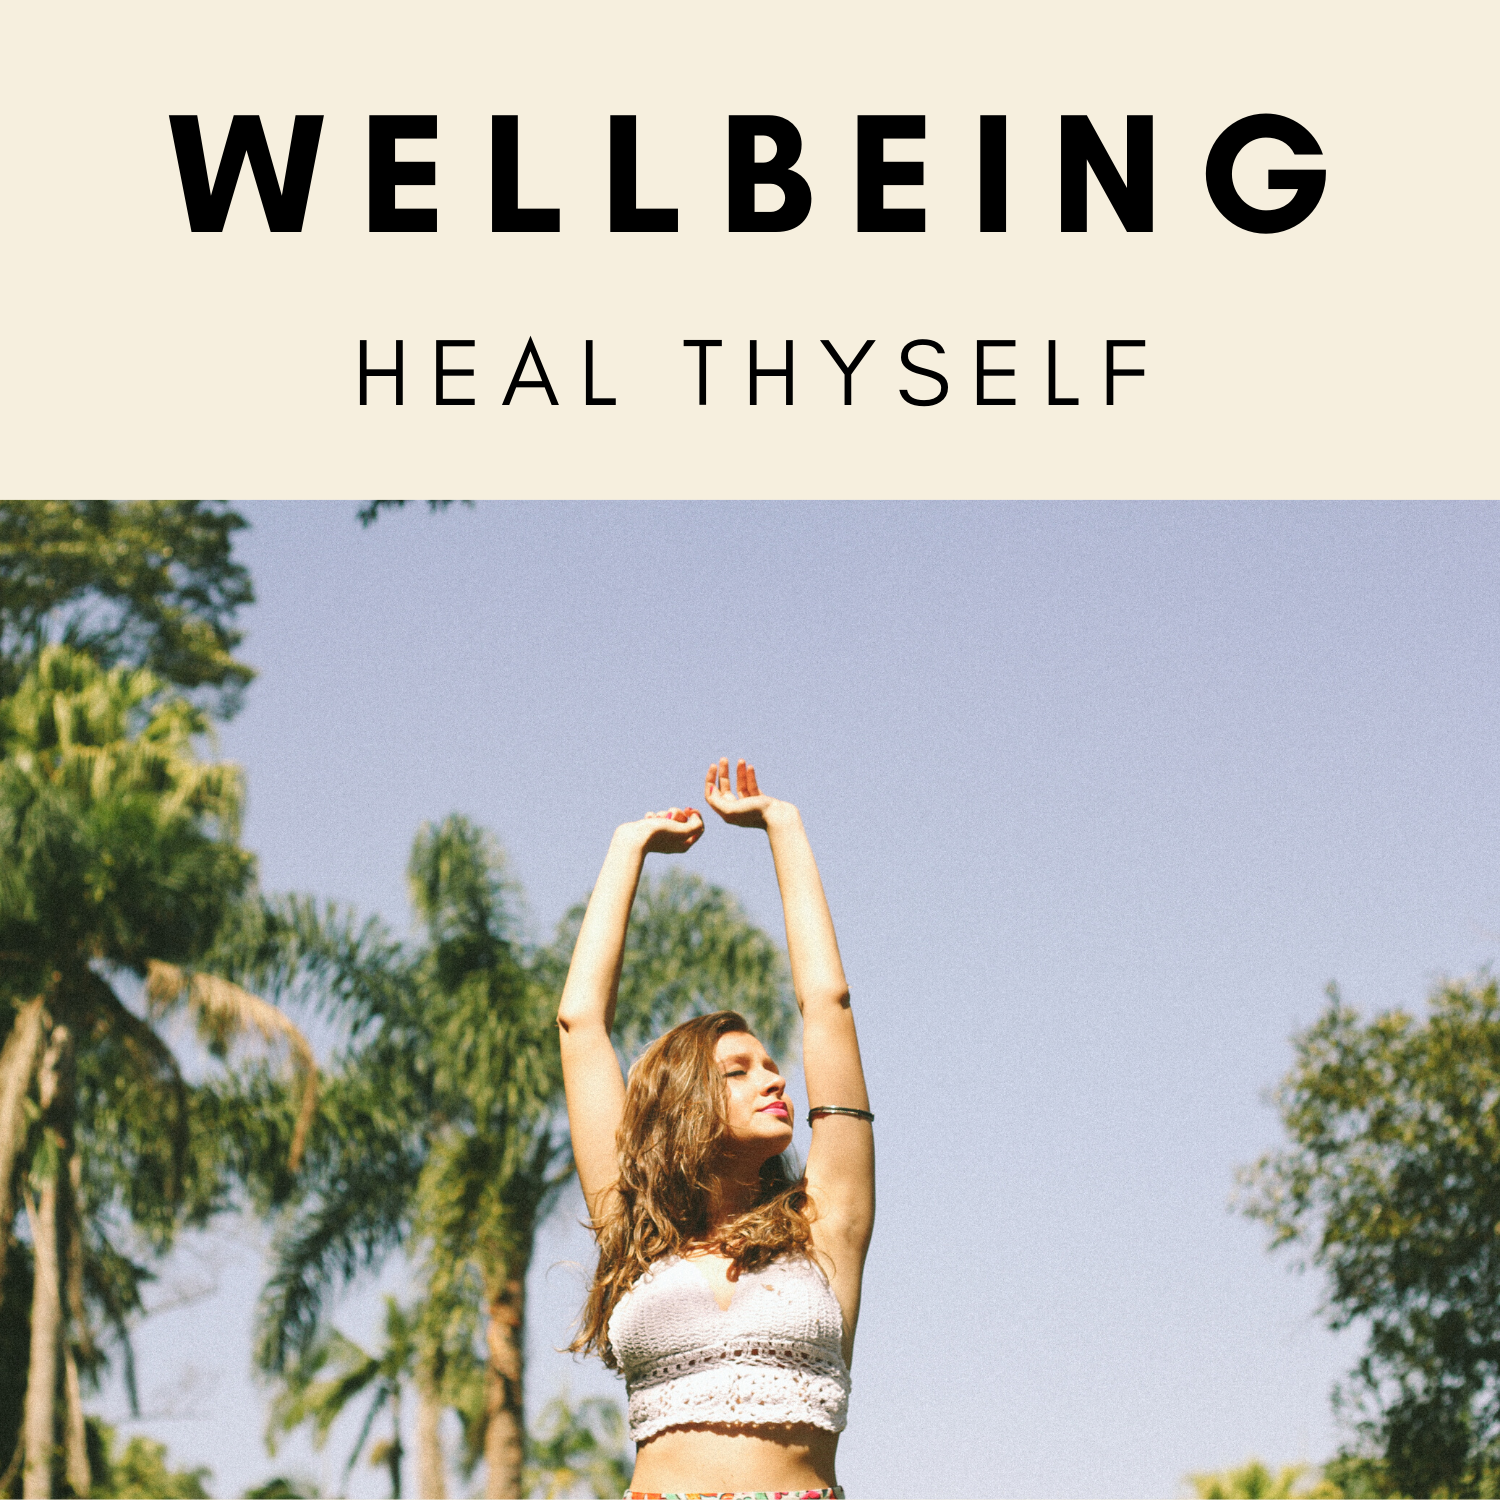 Wellbeing Heal Thyself